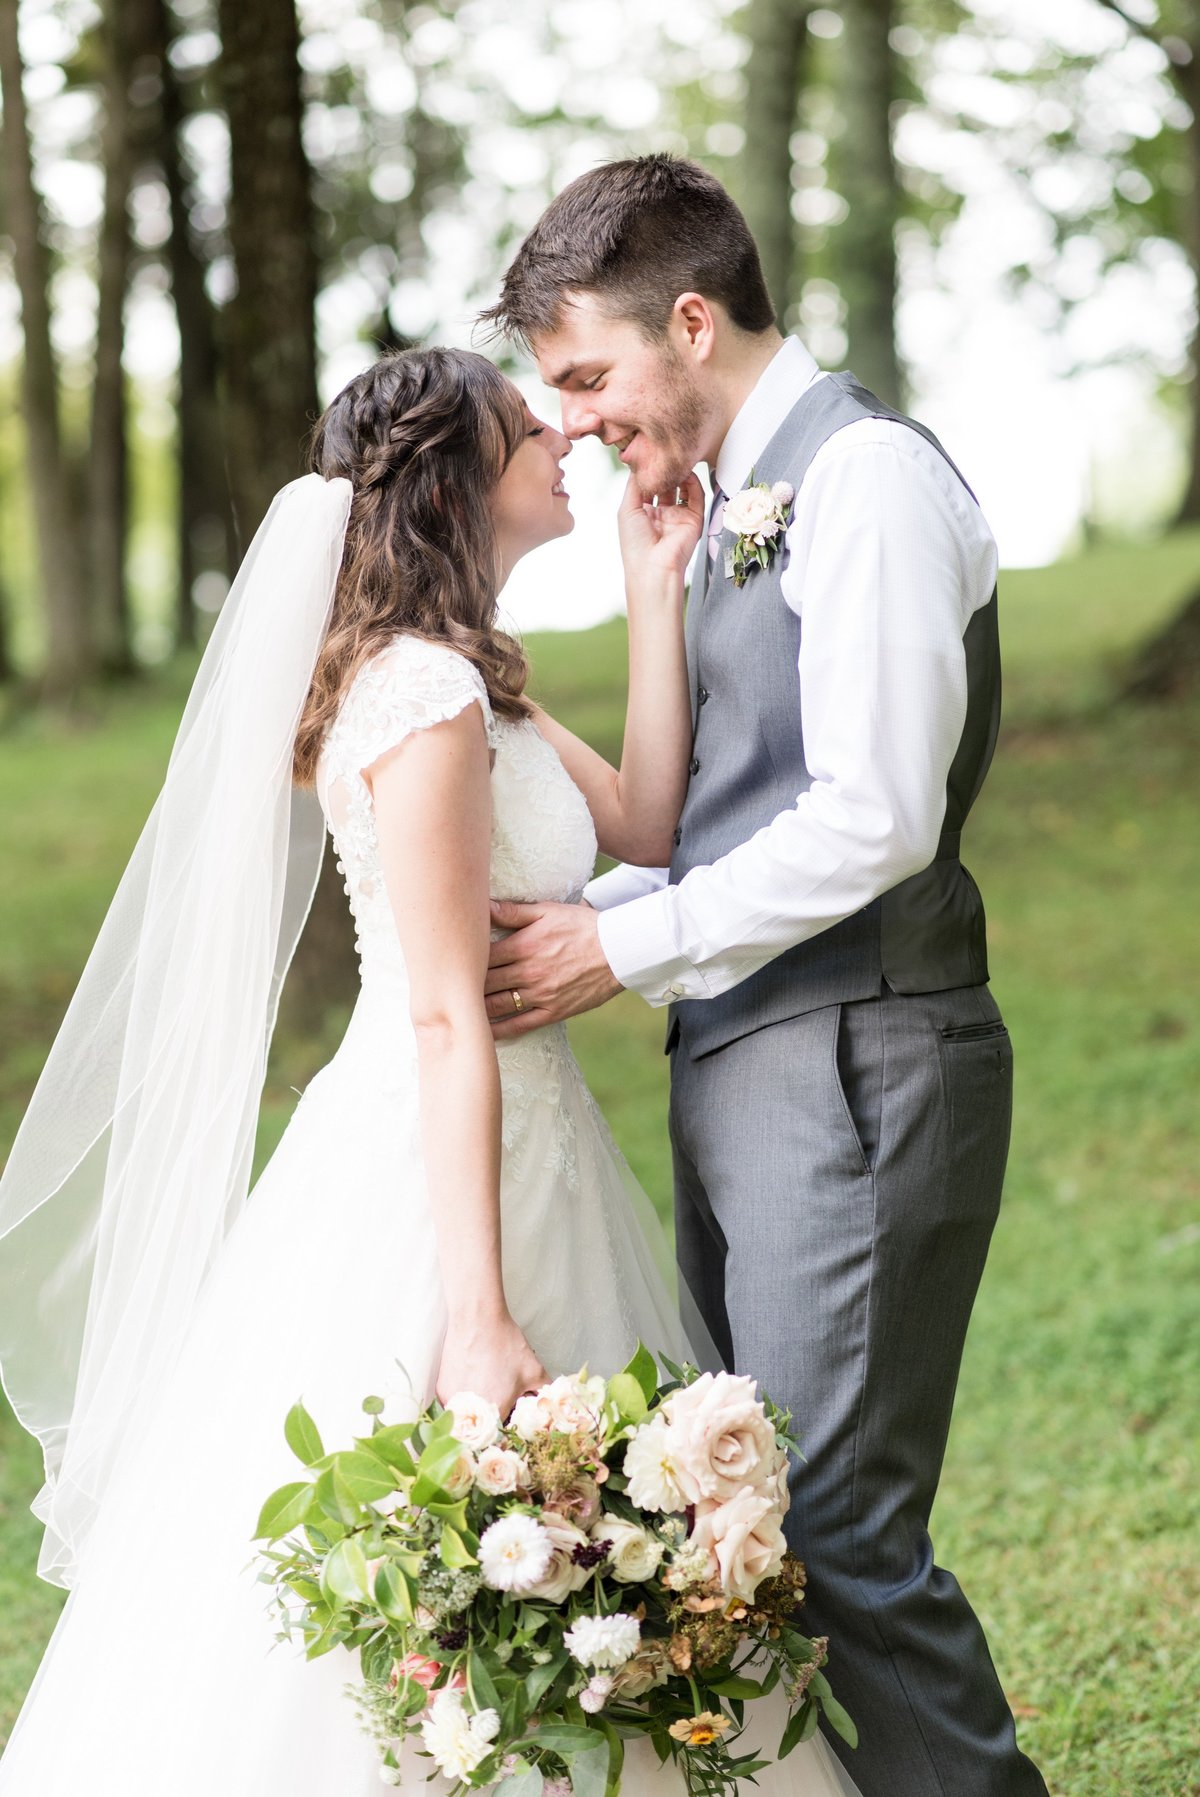 Outdoor-Summer-Wedding-Thompson-Station-Park-Nashville-Wedding-Photographer+9